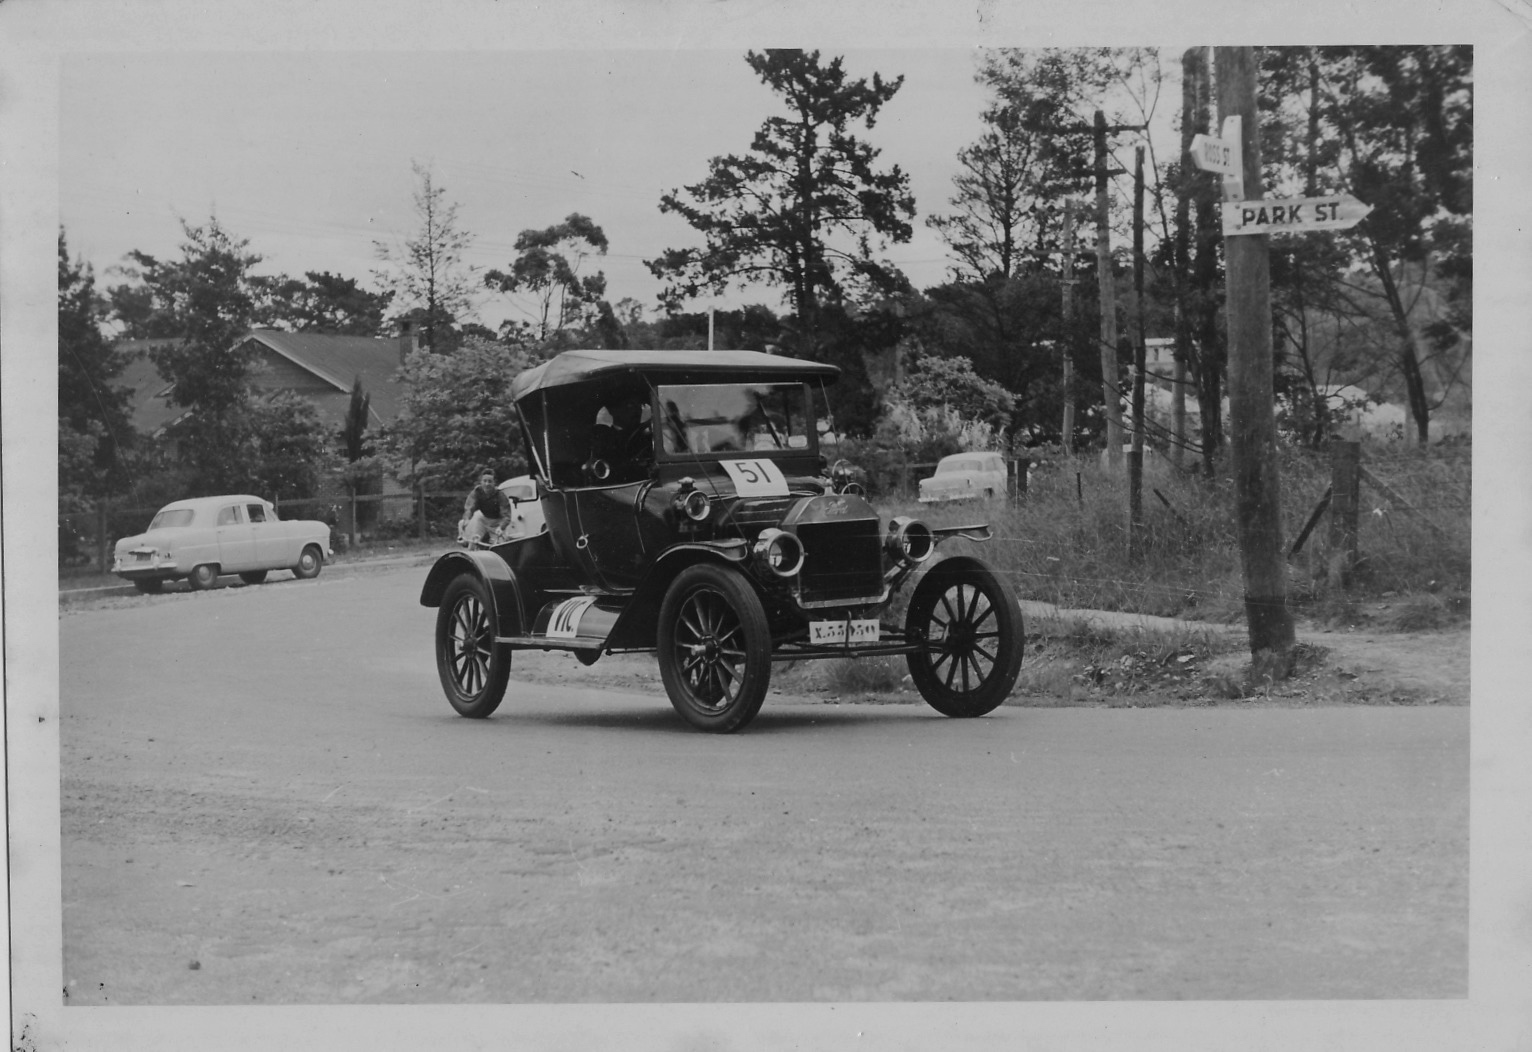 #51 Model T Ford